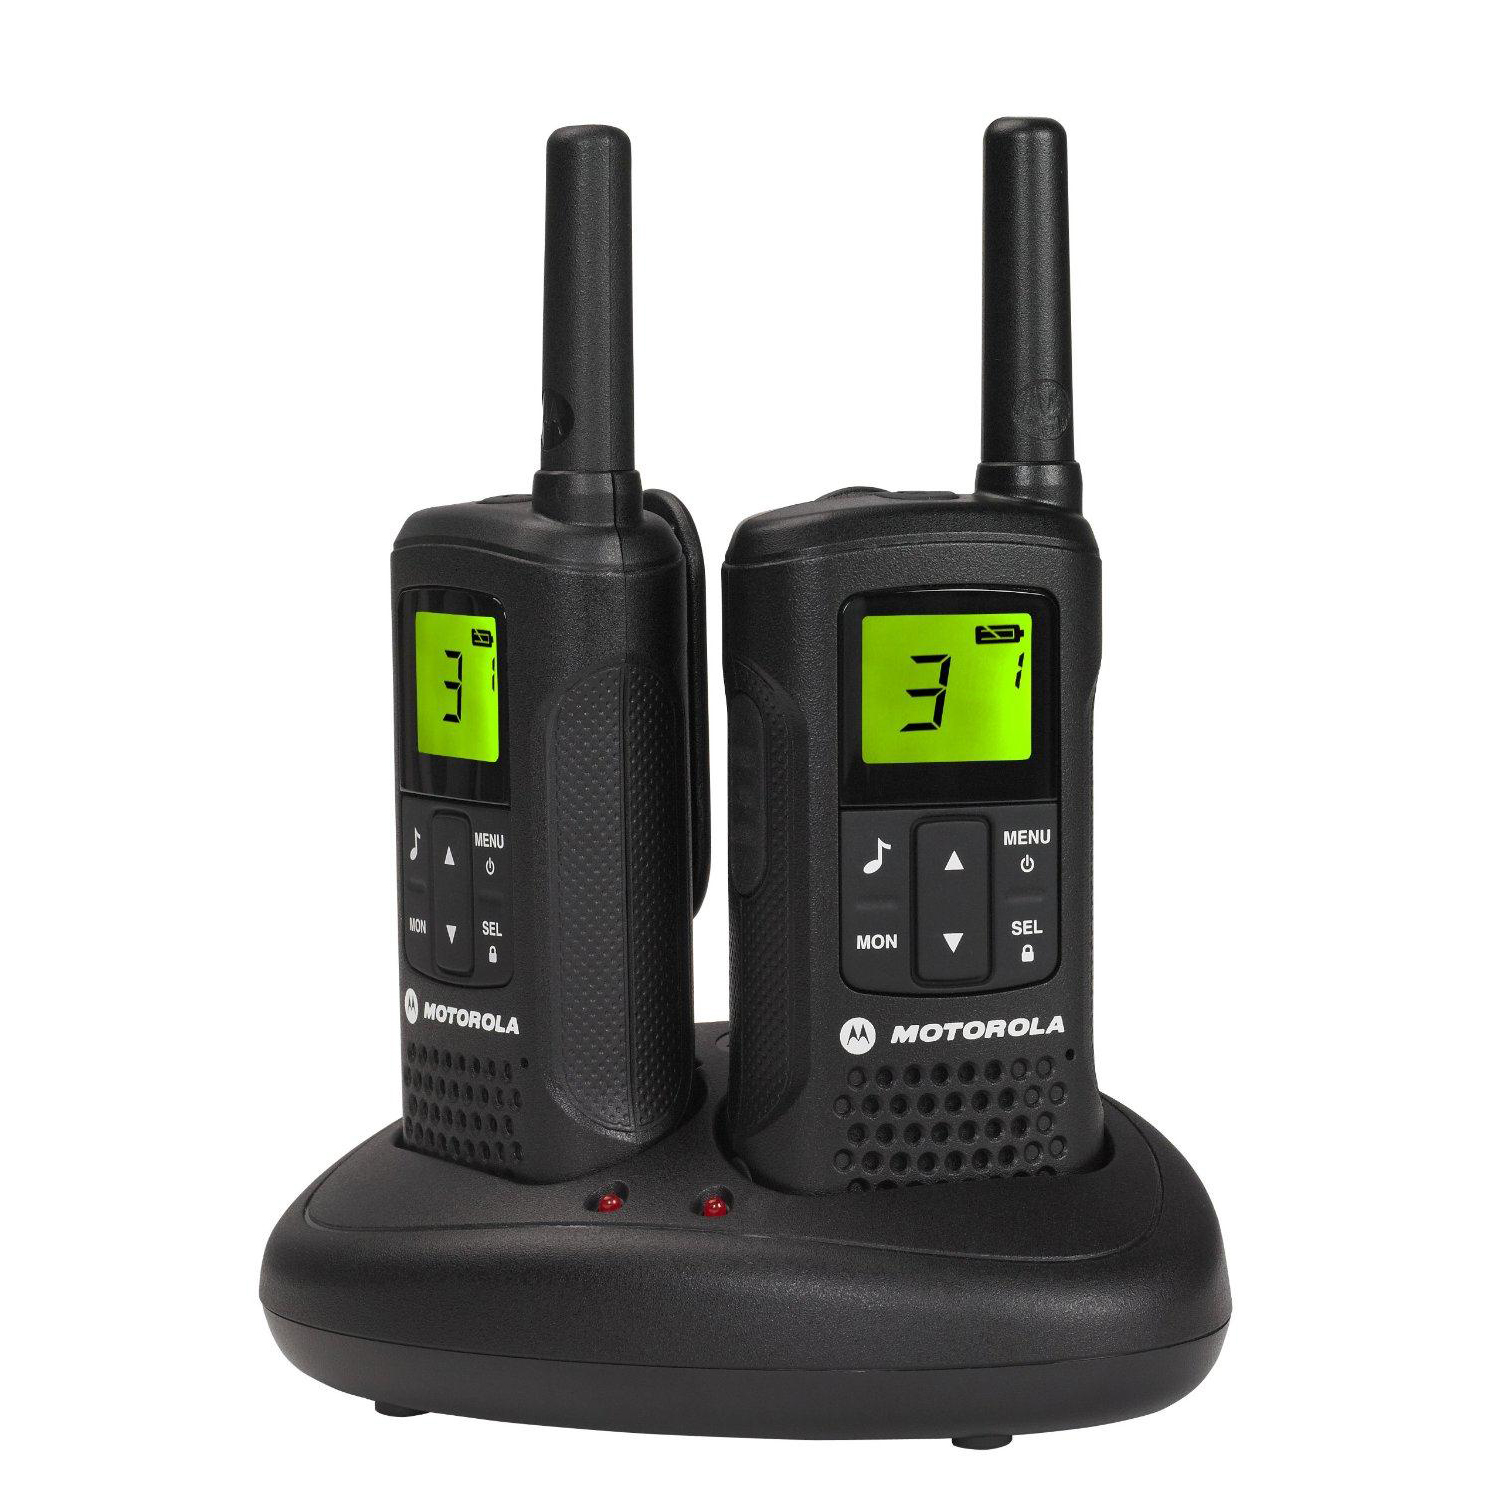 Image for Motorola TLKR-T60 2-way Radios Band PMR446 8 Channels 121 Codes Range 8km Ref 50046 [Pair]